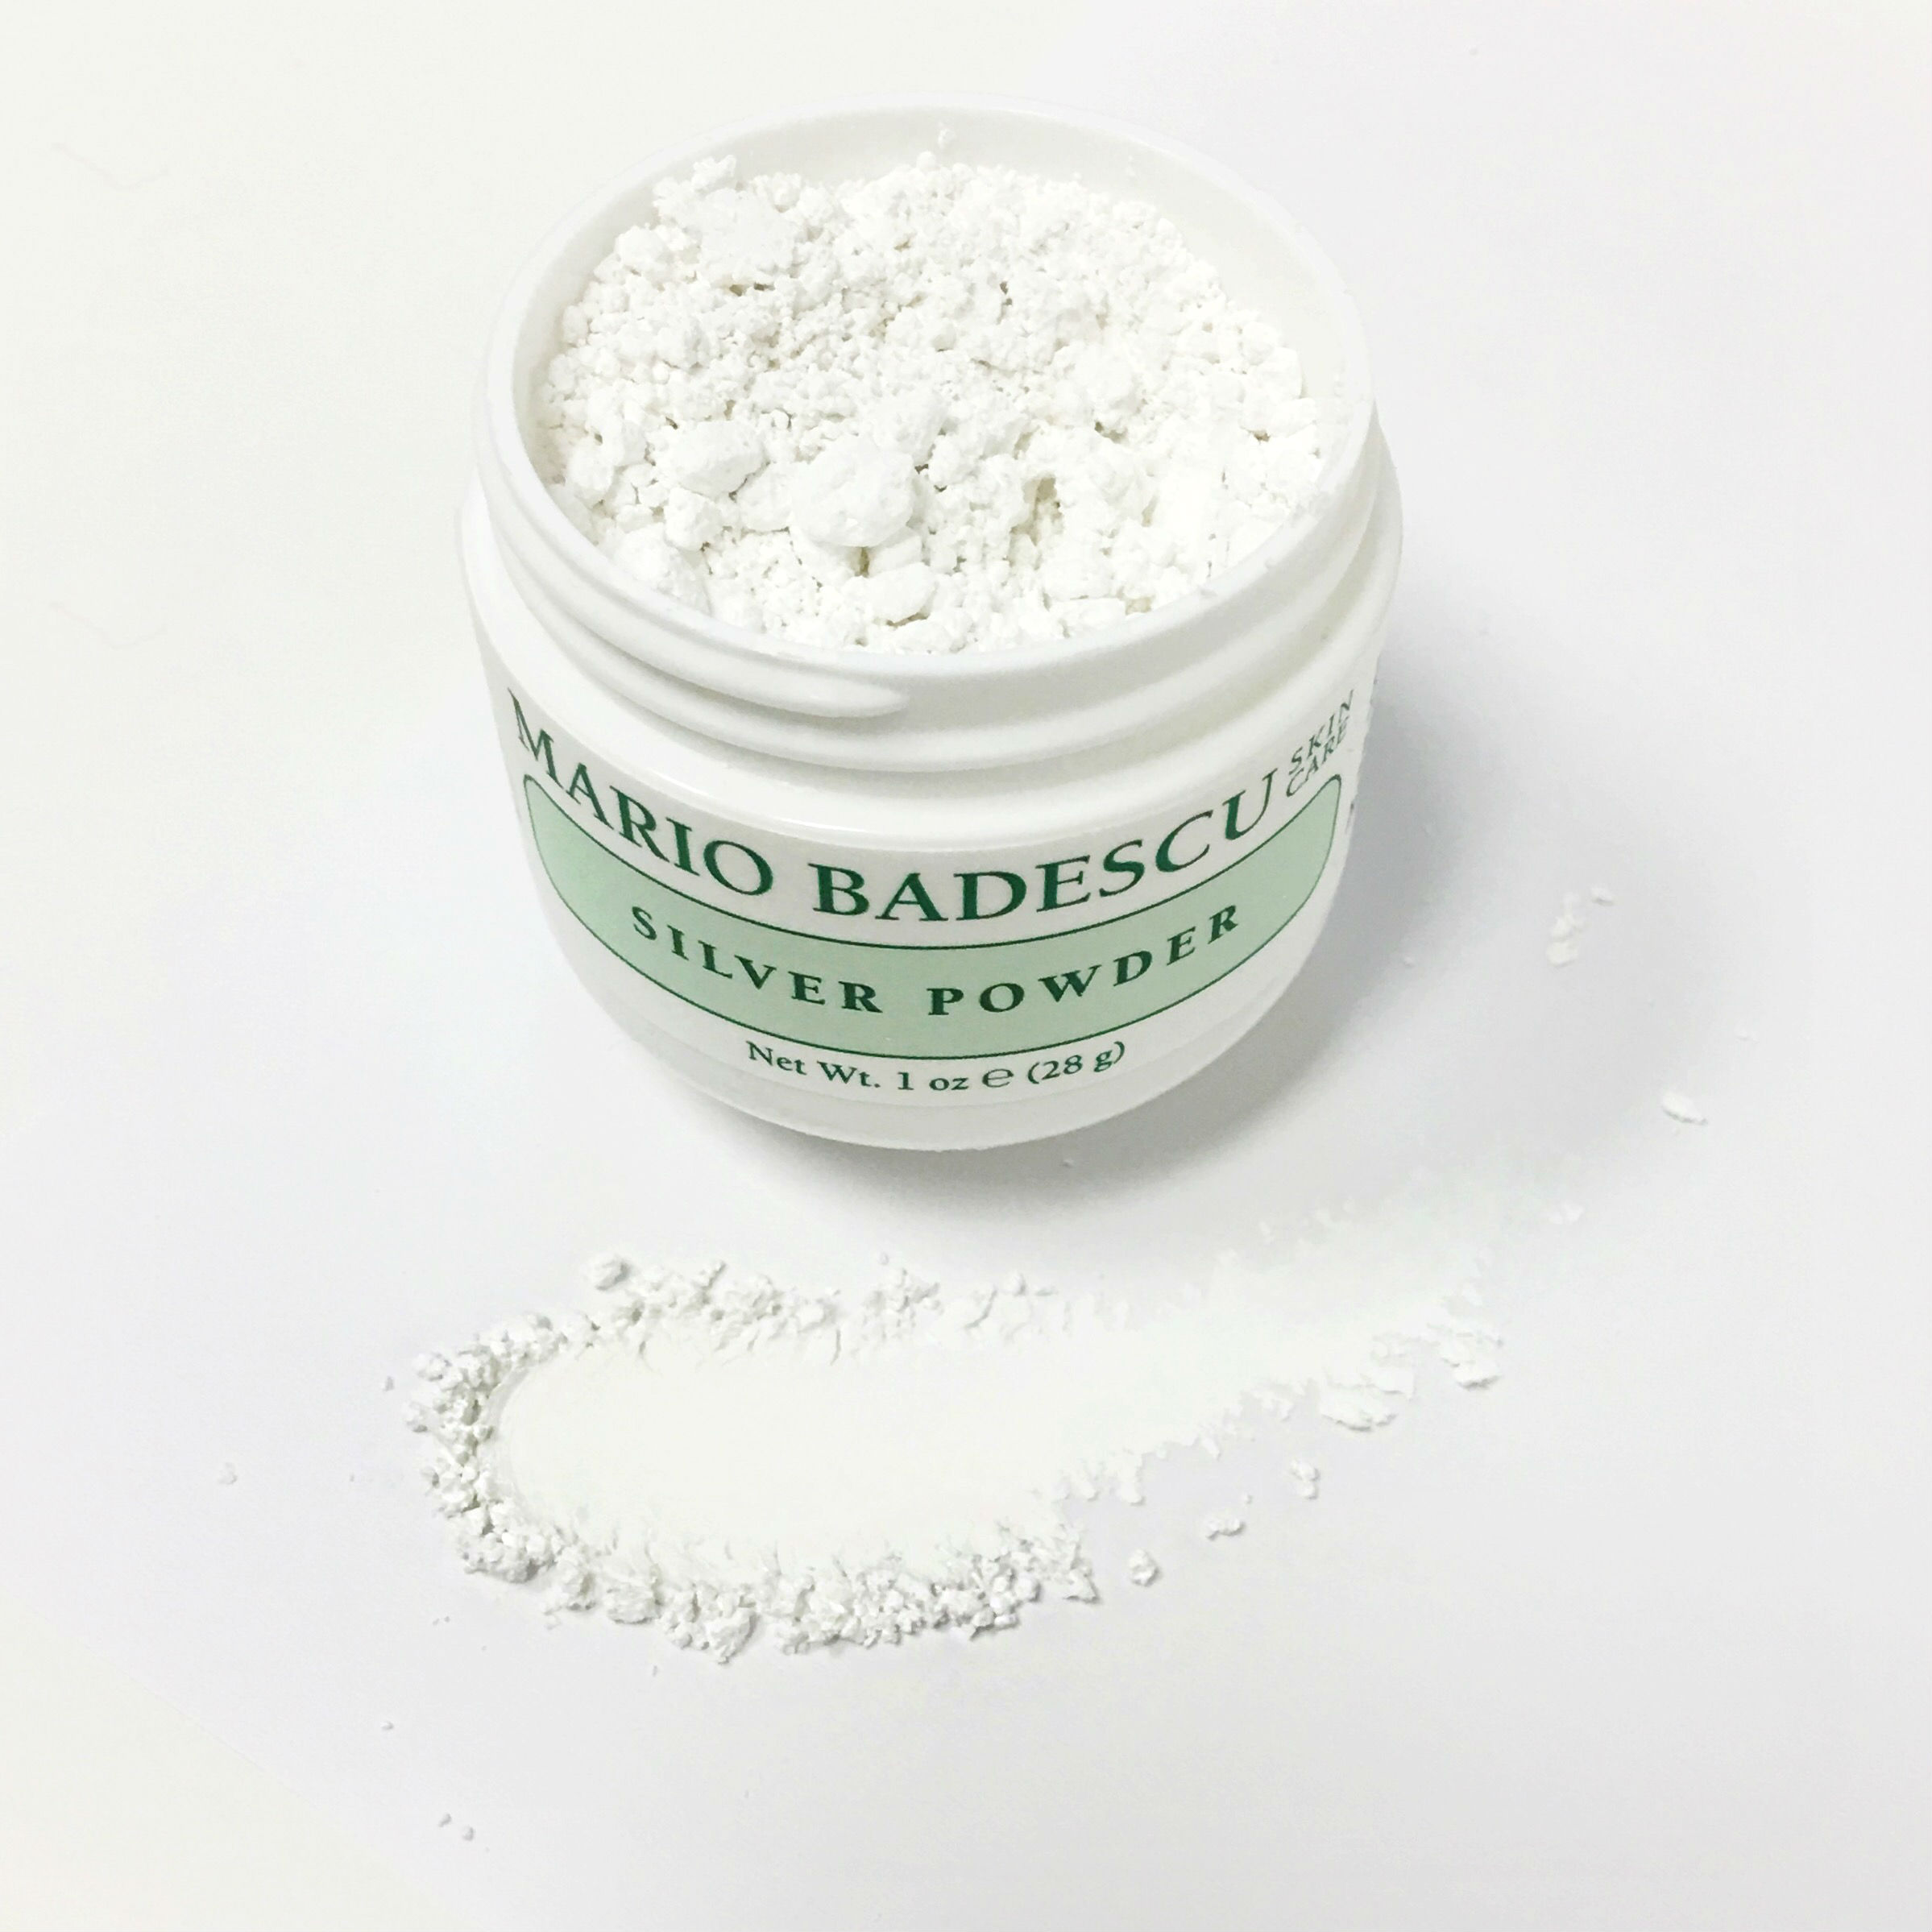 how to use mario badescu silver powder